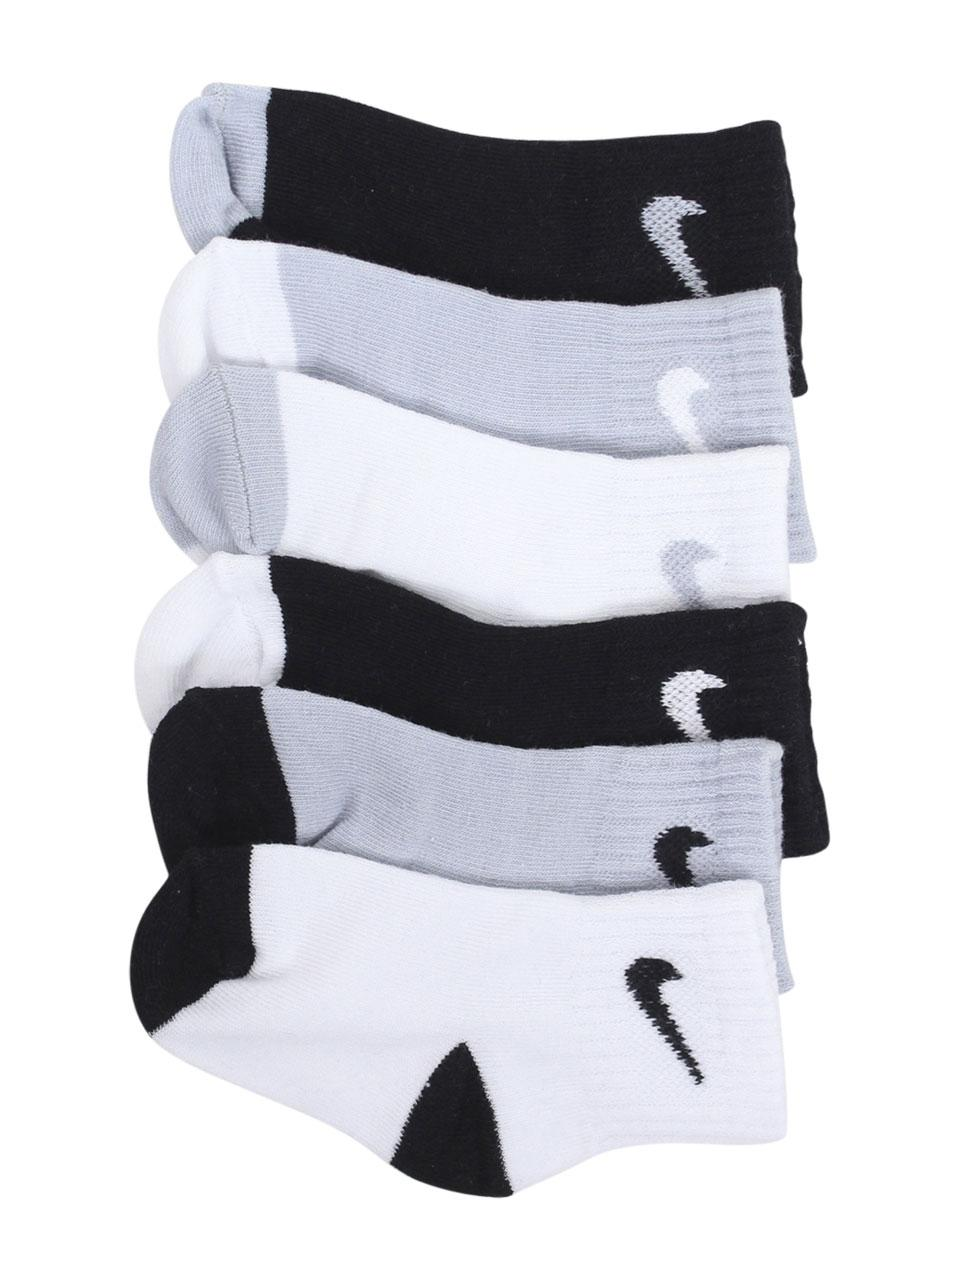 Image of Nike Infant/Toddler Boy's 6 Pairs Logo Pack Socks - Black/Wolf Grey Assorted - 12 24 Months